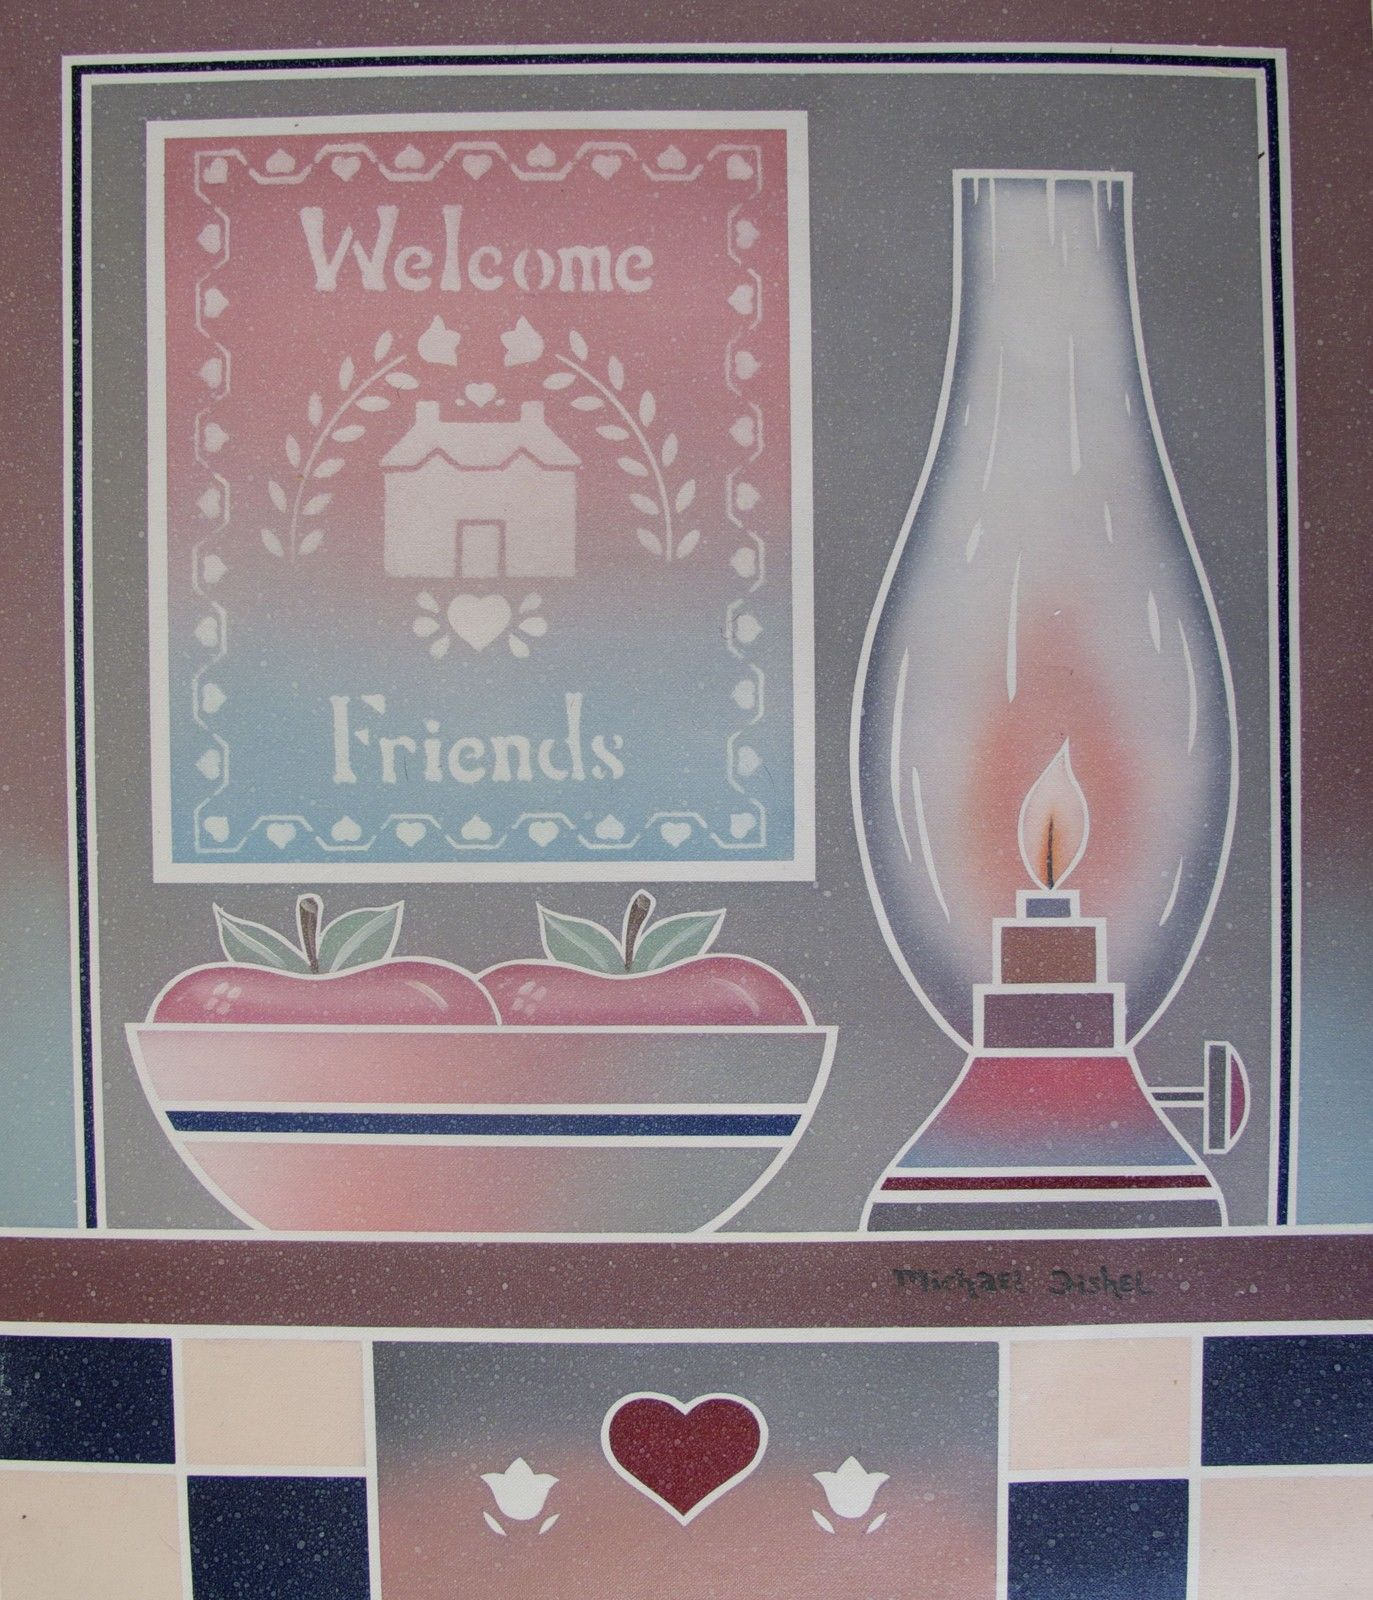 WELCOME FRIENDS Signed Original Oil Painting on Canvas